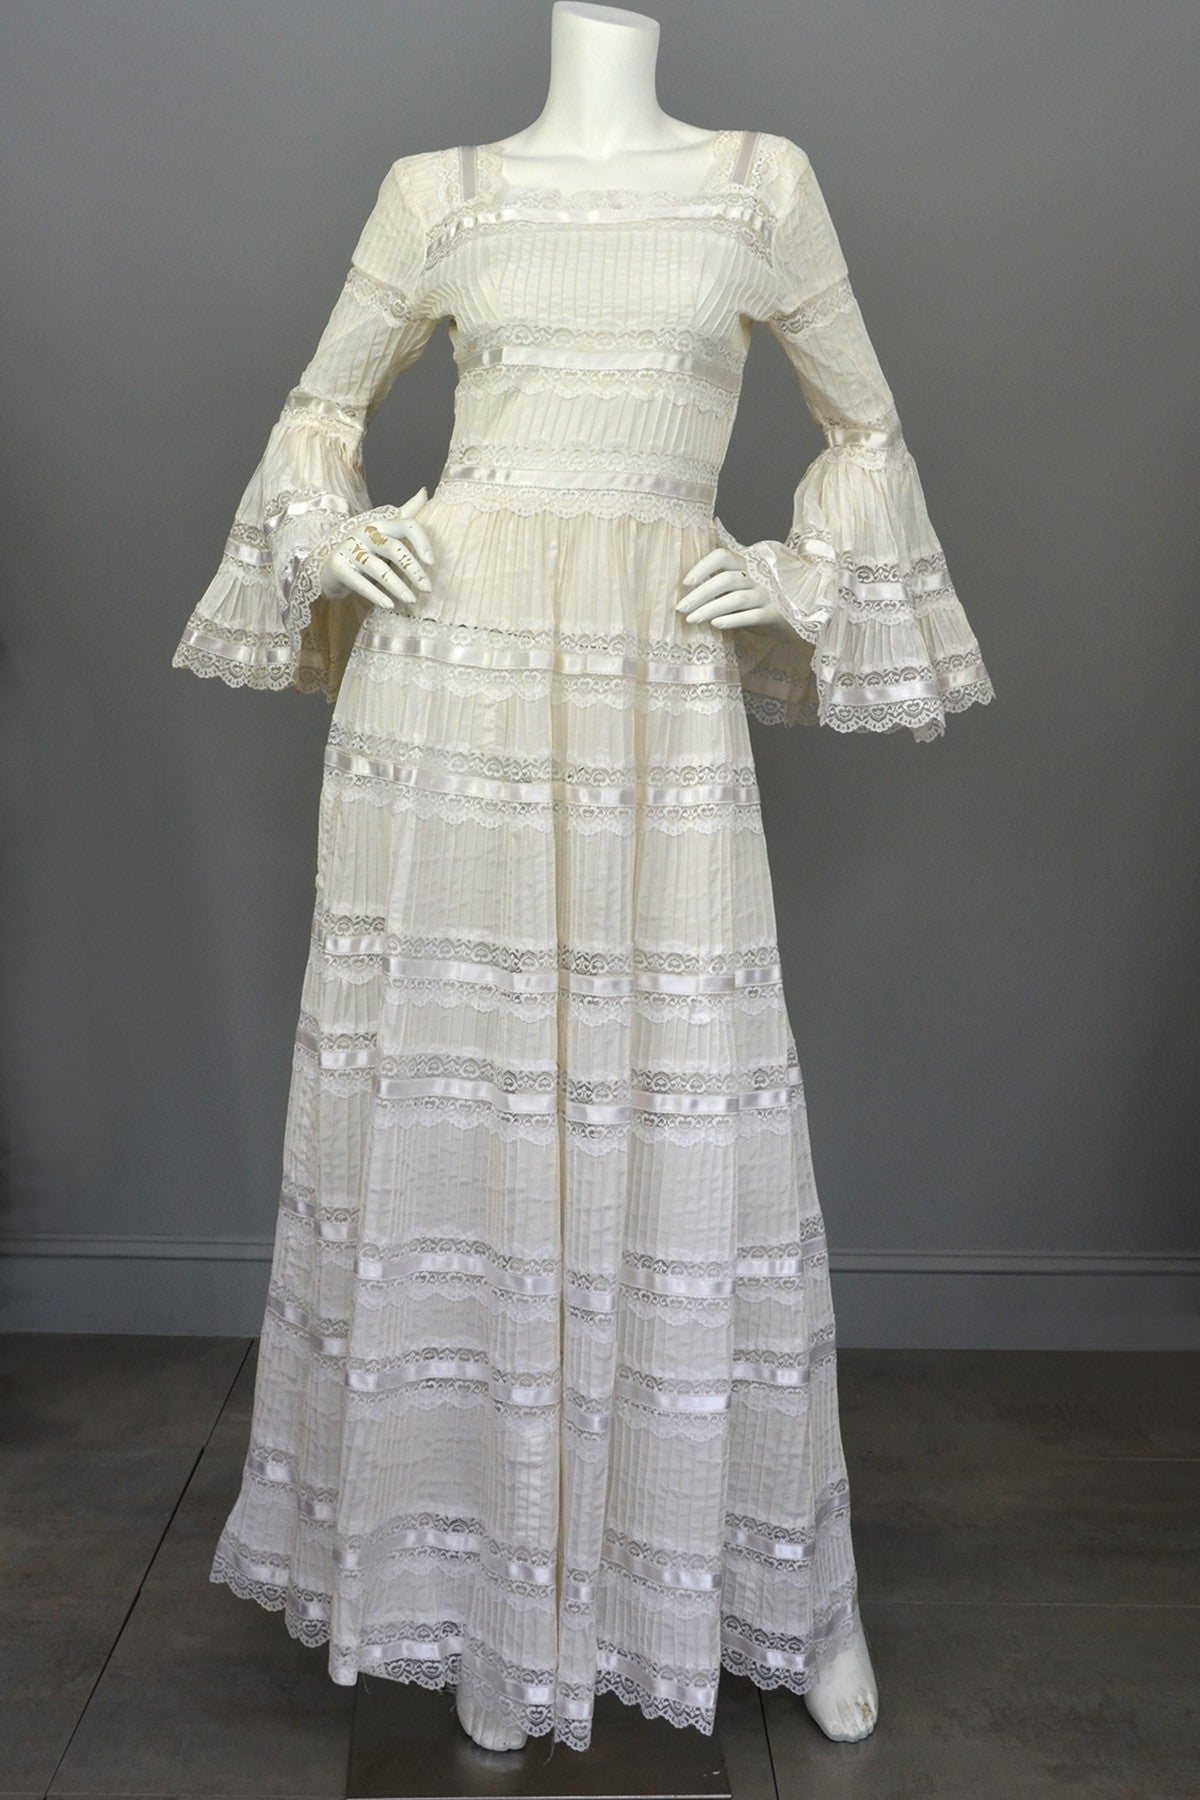 Mexican Wedding Dress.1970s Vintage Mexican Wedding Dress With Bell Sleeves And Lace